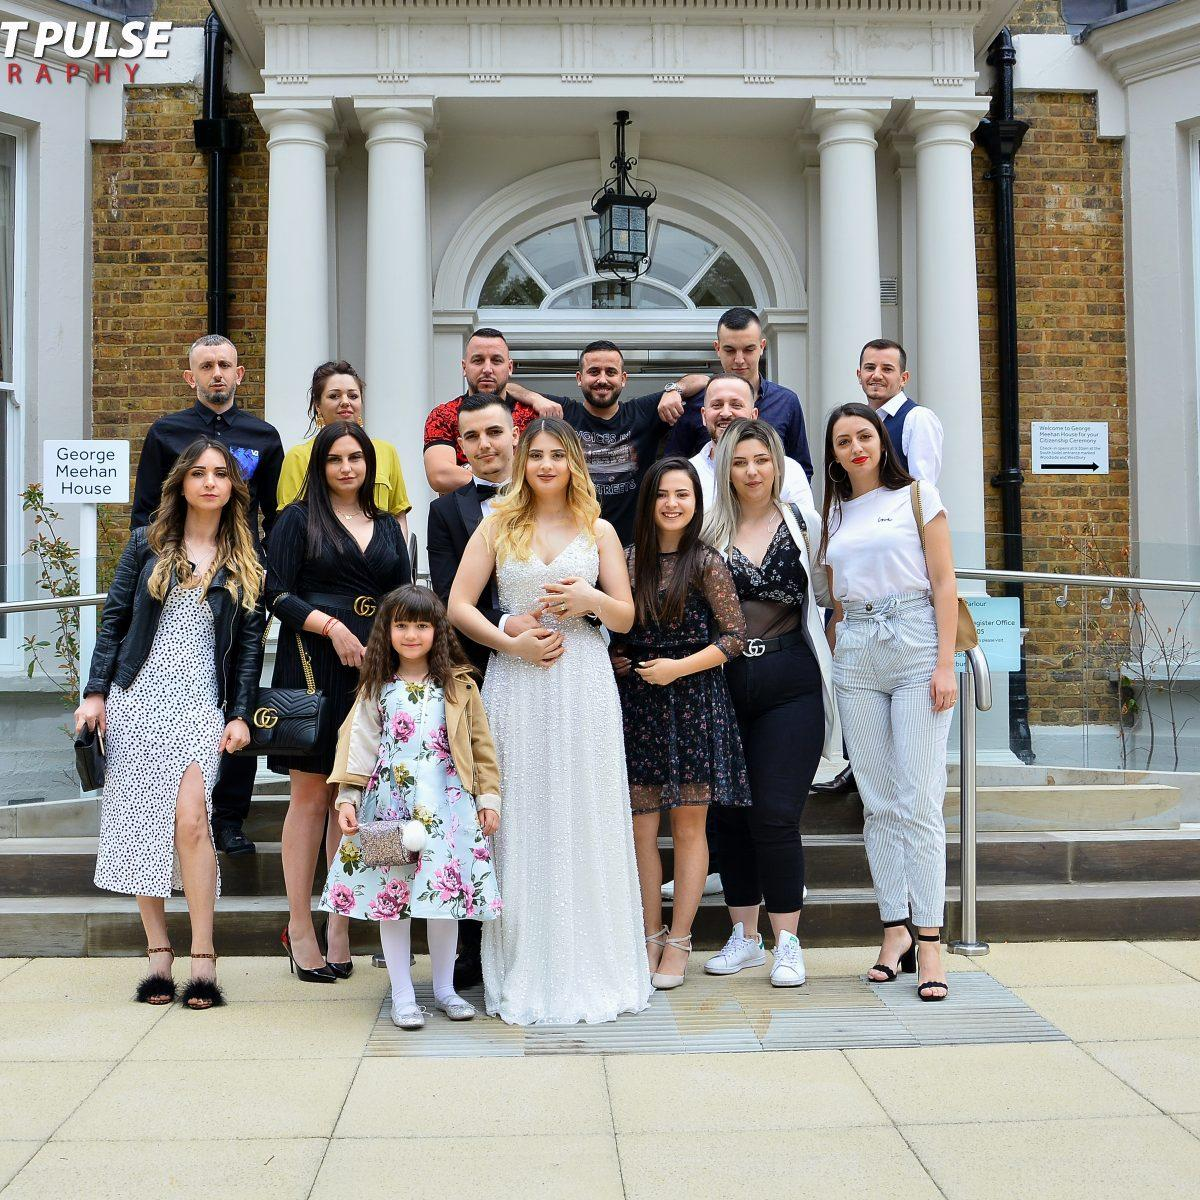 Civil ceremony photography services in London